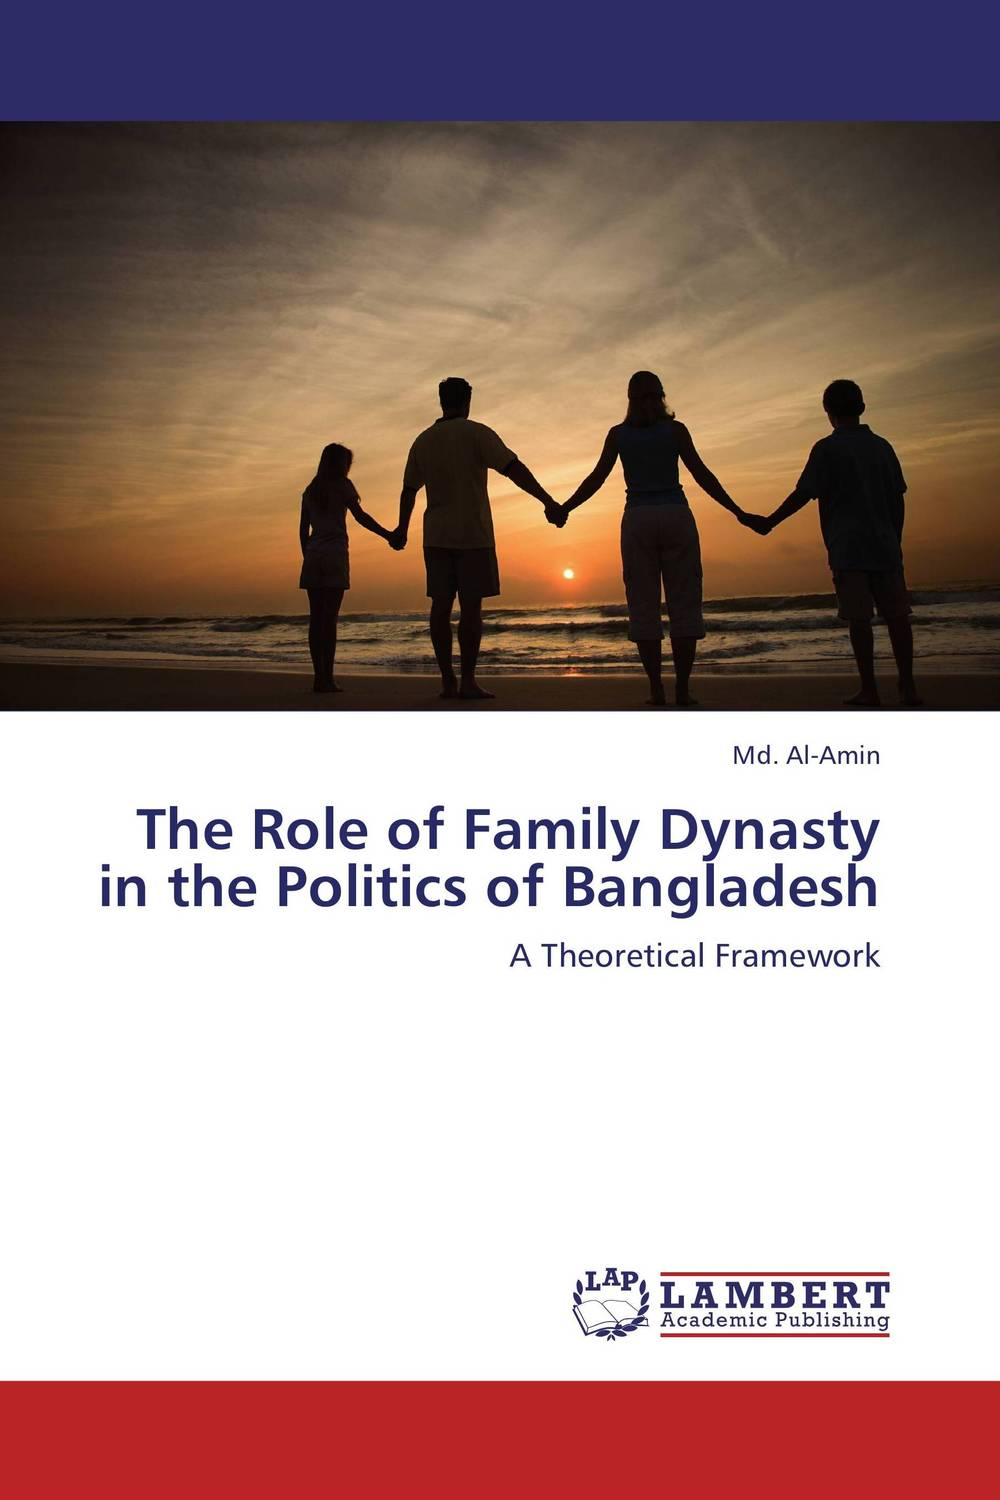 The Role of Family Dynasty in the Politics of Bangladesh